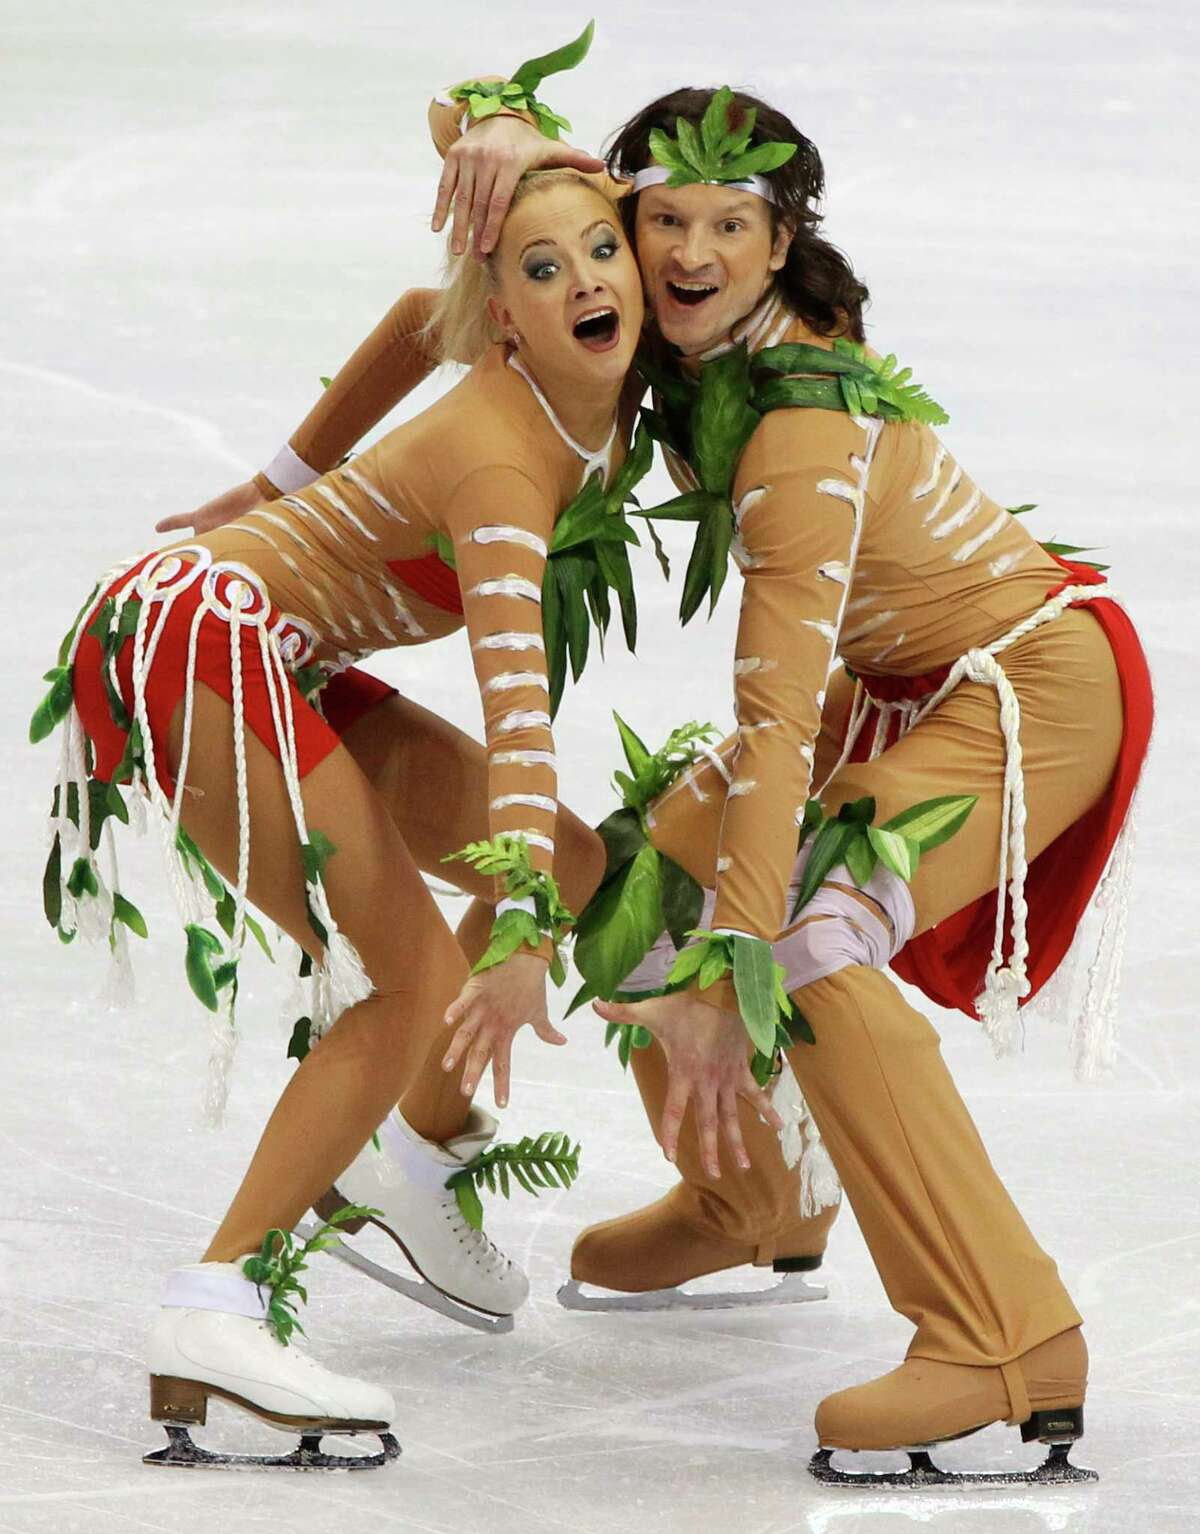 Russia's Oksana Domnina and Maxim Shabalin perform their original dance during the ice dance figure skating competition at the Vancouver 2010 Olympics in Vancouver, British Columbia, Sunday, Feb. 21, 2010.